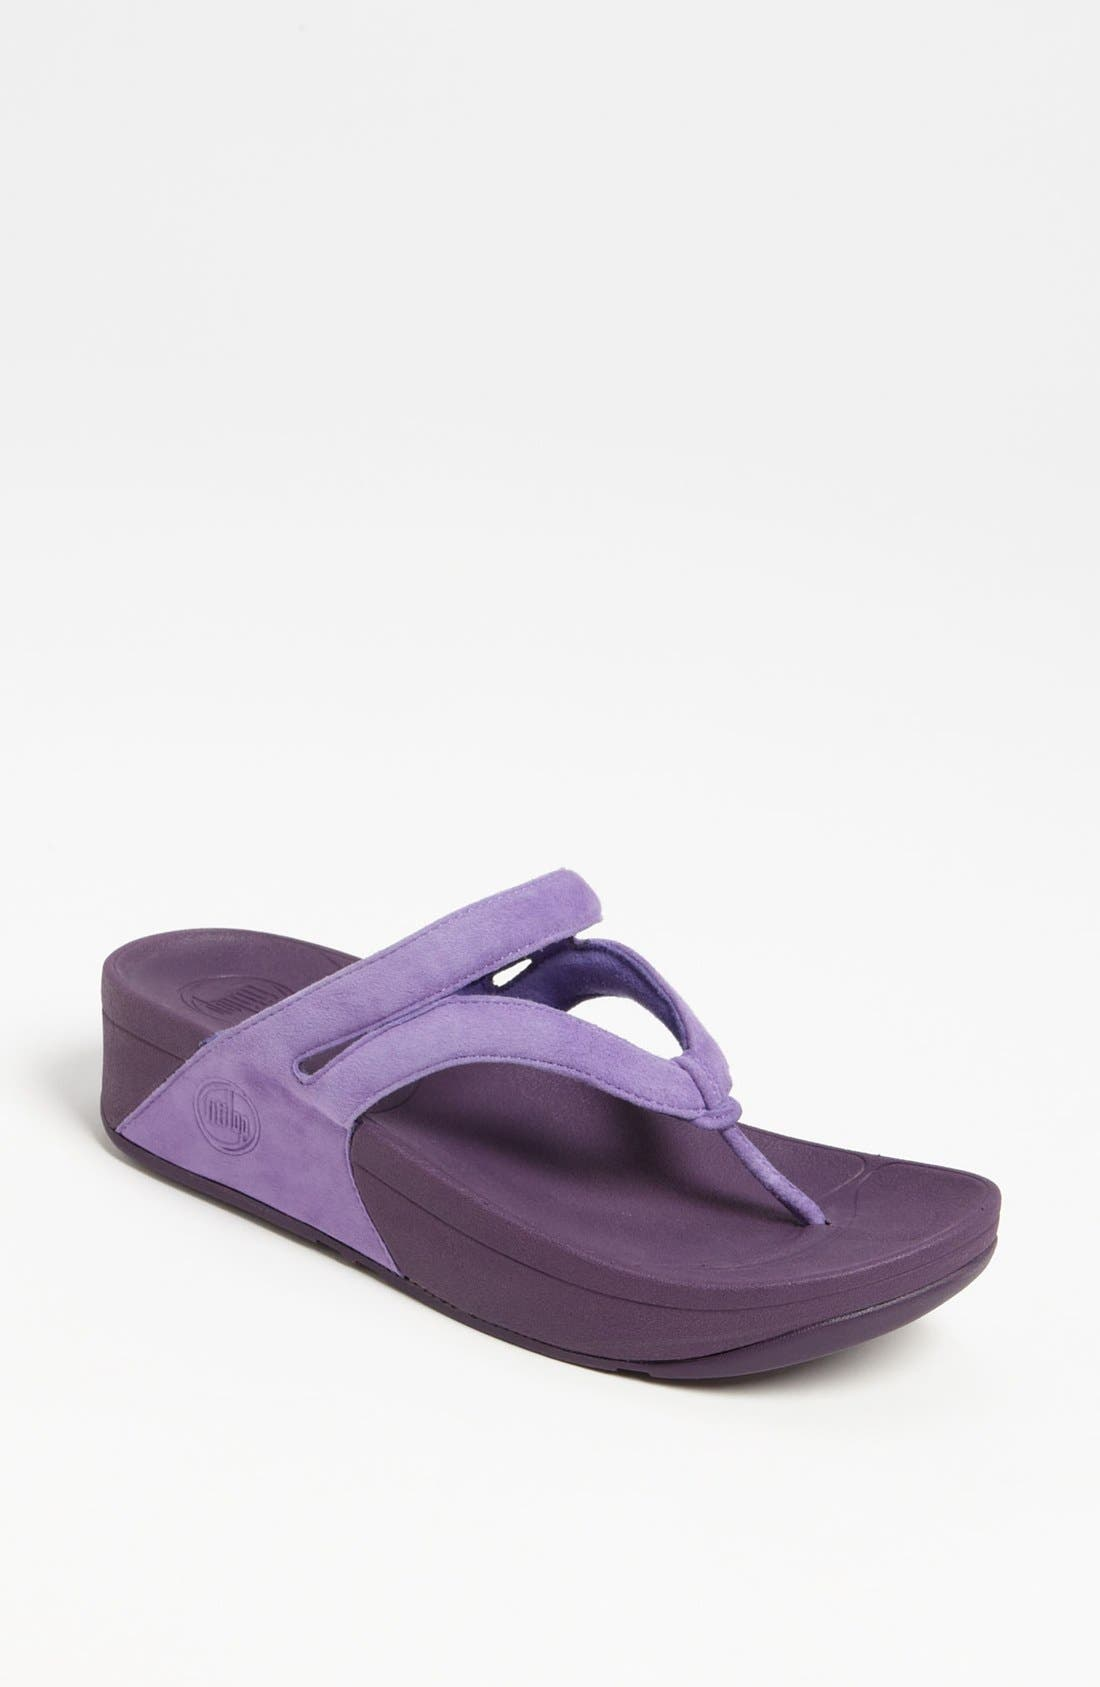 Main Image - FitFlop 'Whirl™' Suede Sandal